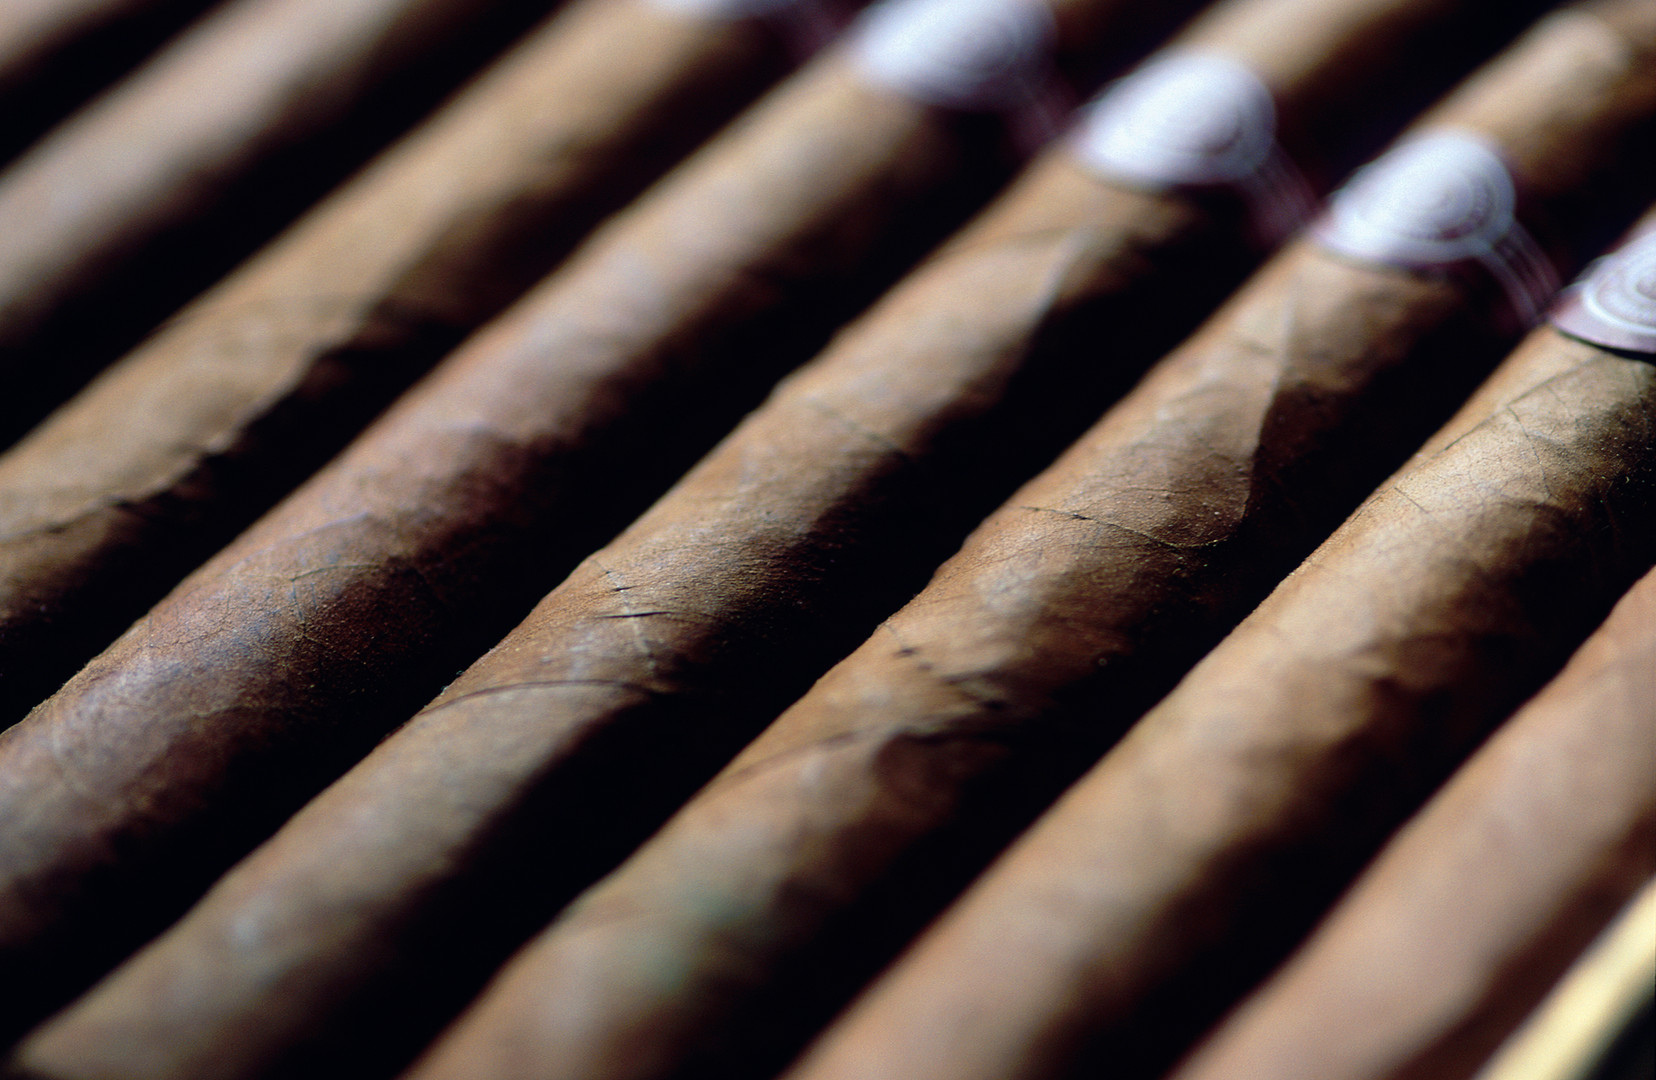 Row of Cigars